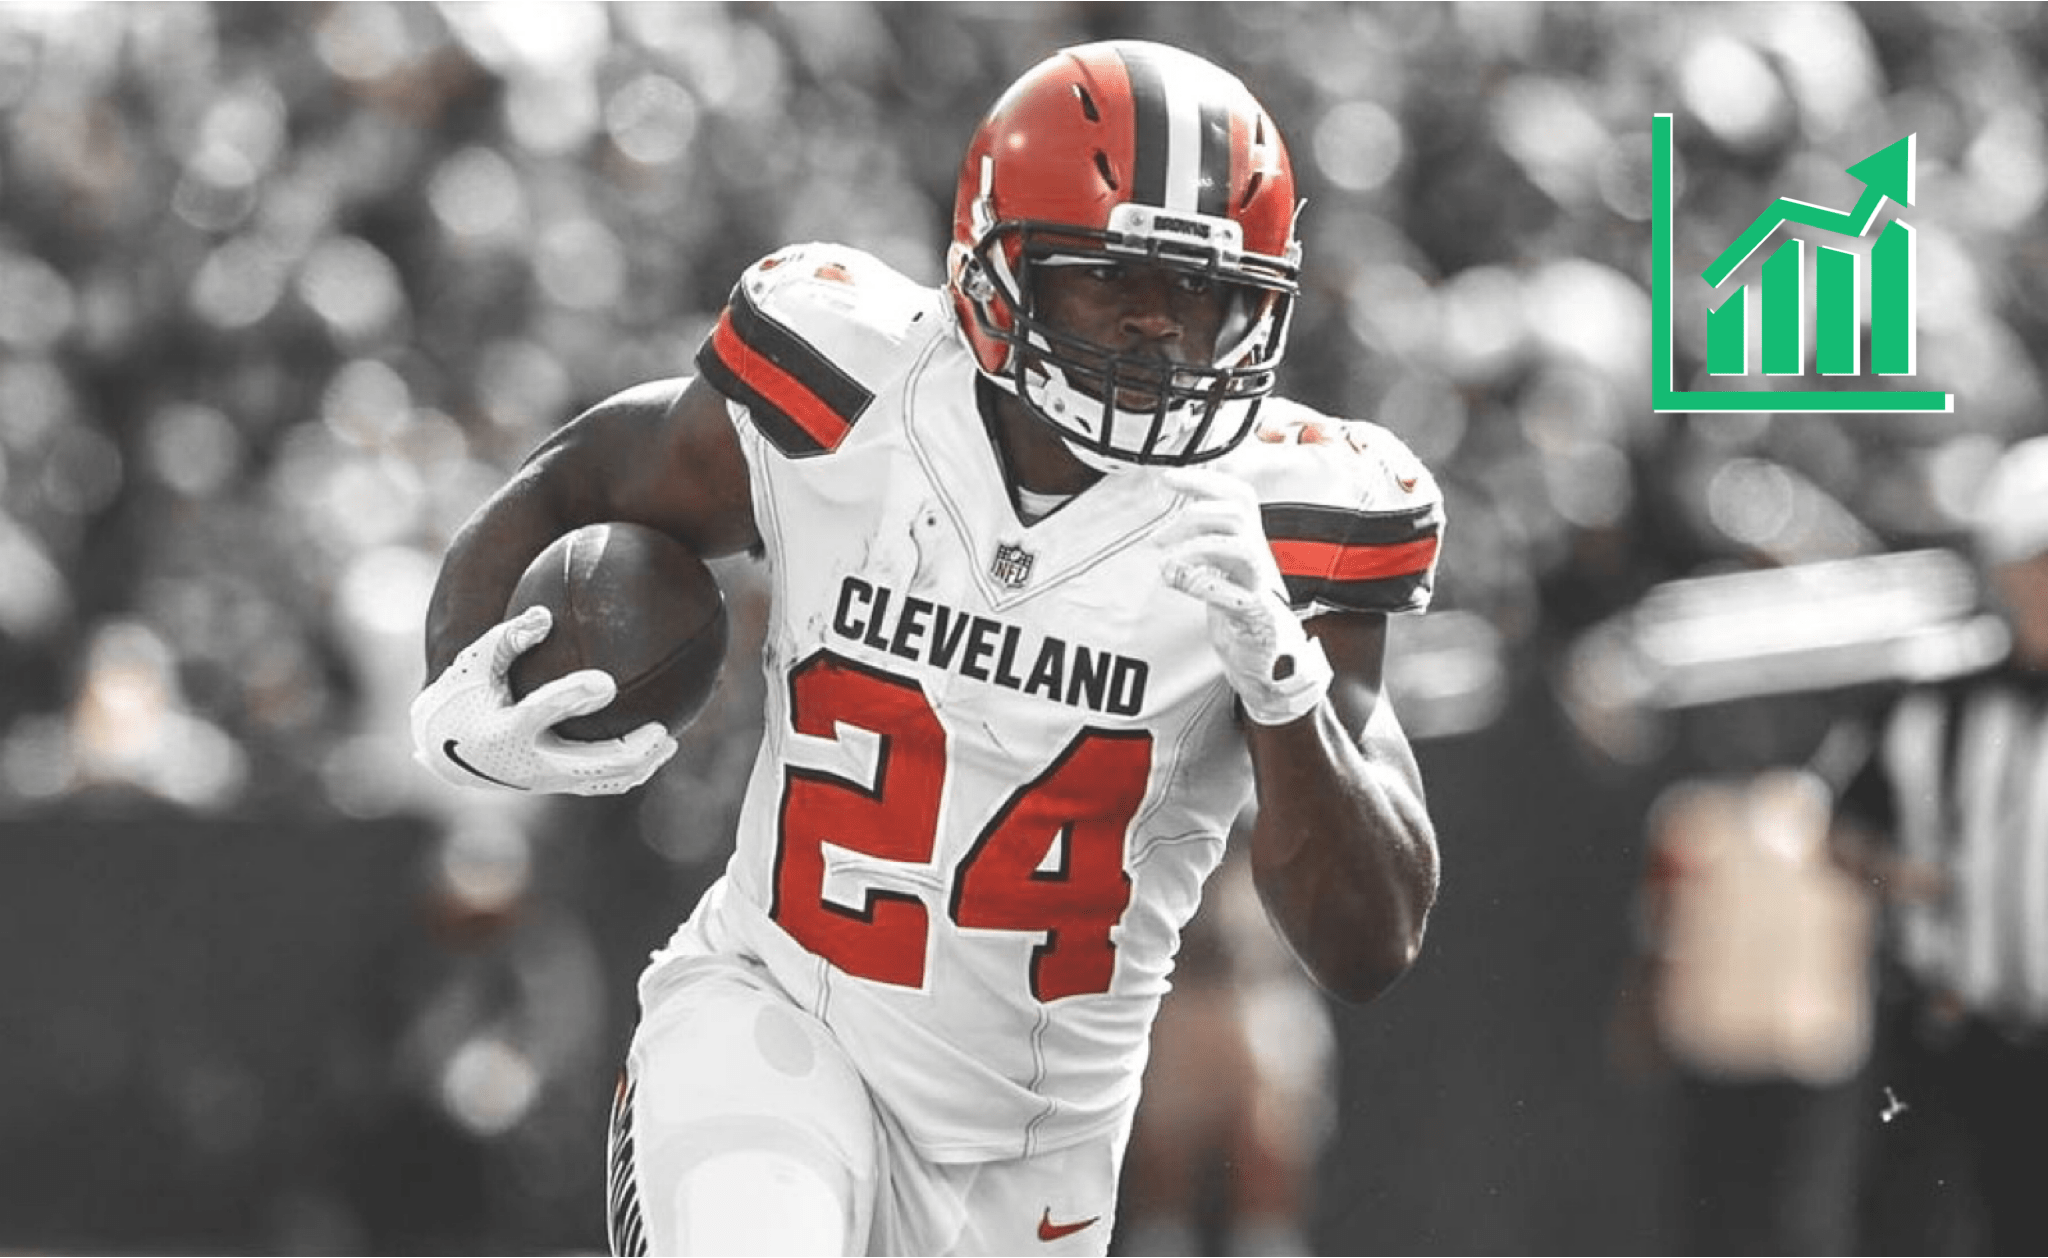 newest 98d1f 097de Nick Chubb's Fantasy Stock Shoots to the Moon After Carlos ...